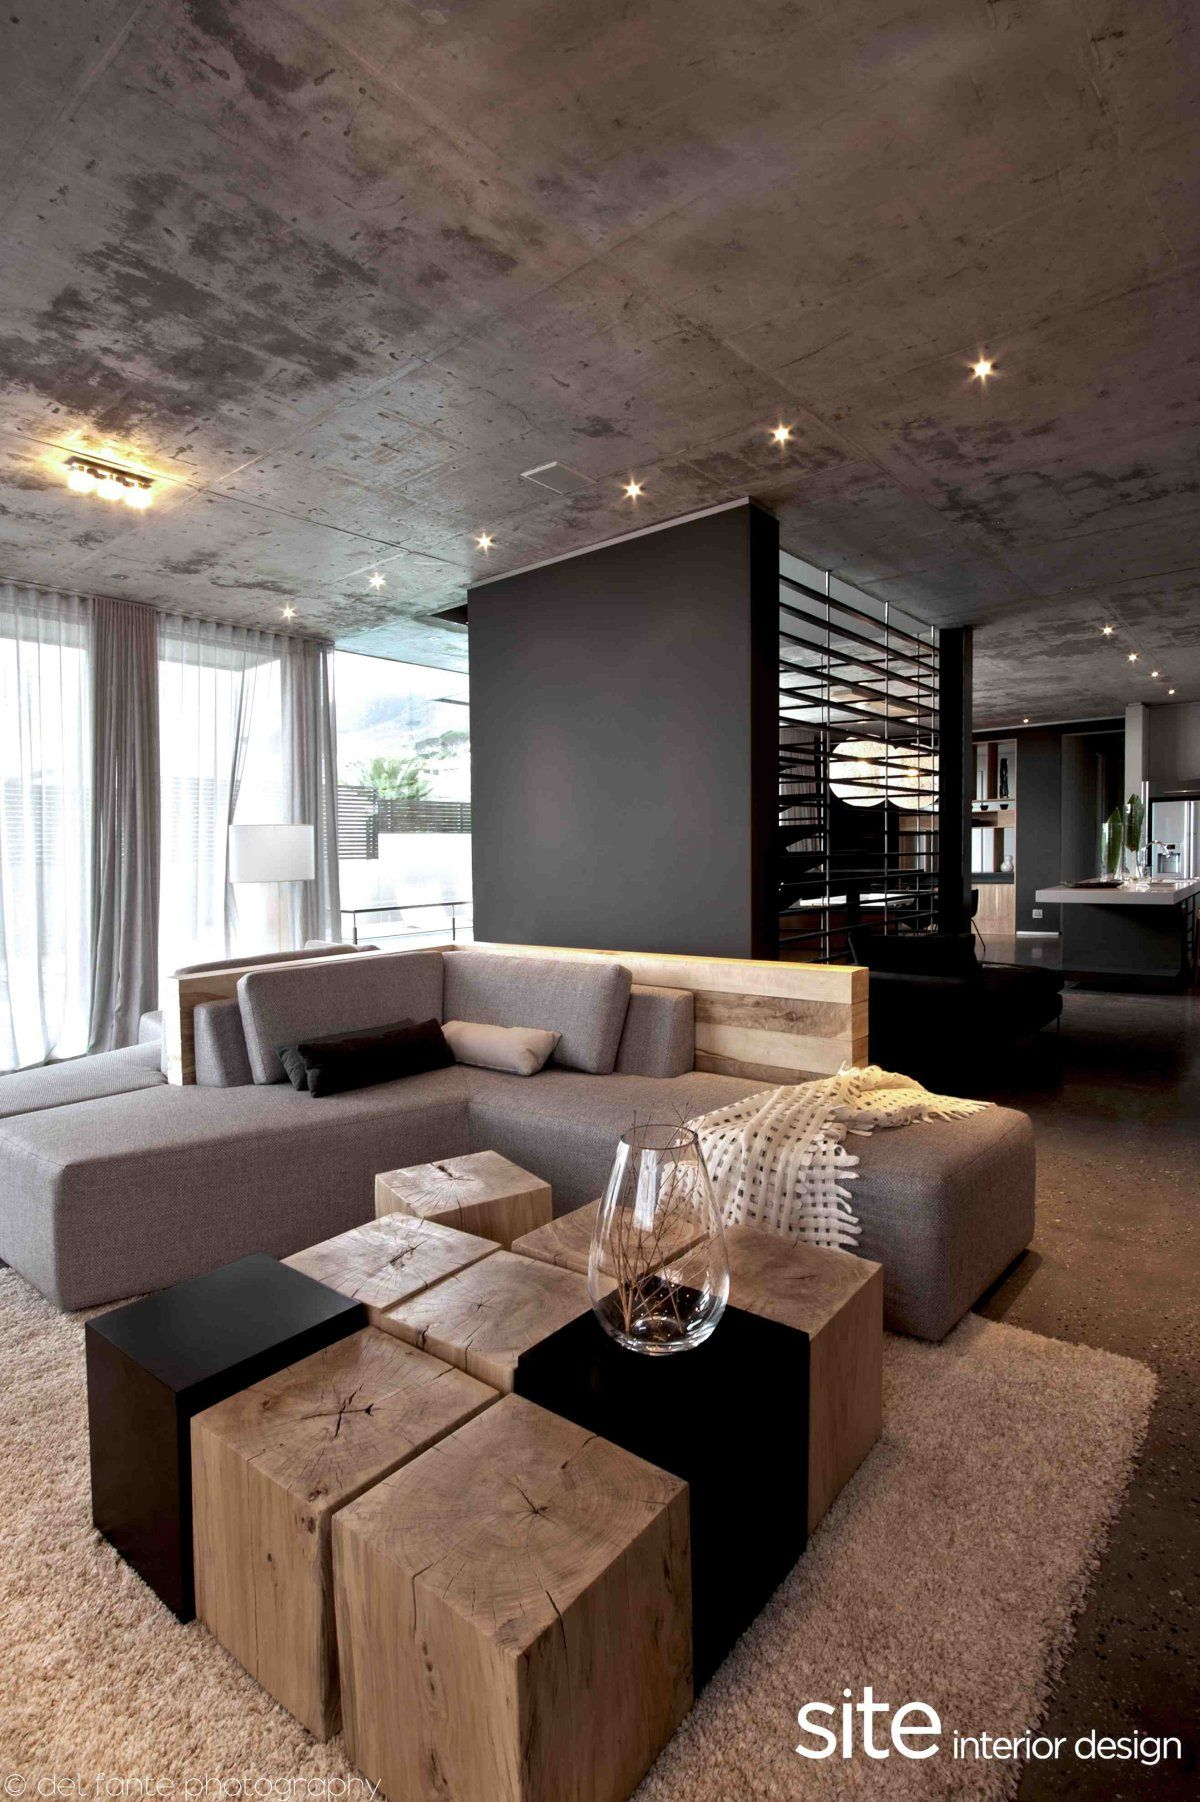 Site Interior Design Greg Wright Architects Aupiais House In Camps Bay South Africa Cool Tumblr Inspiration